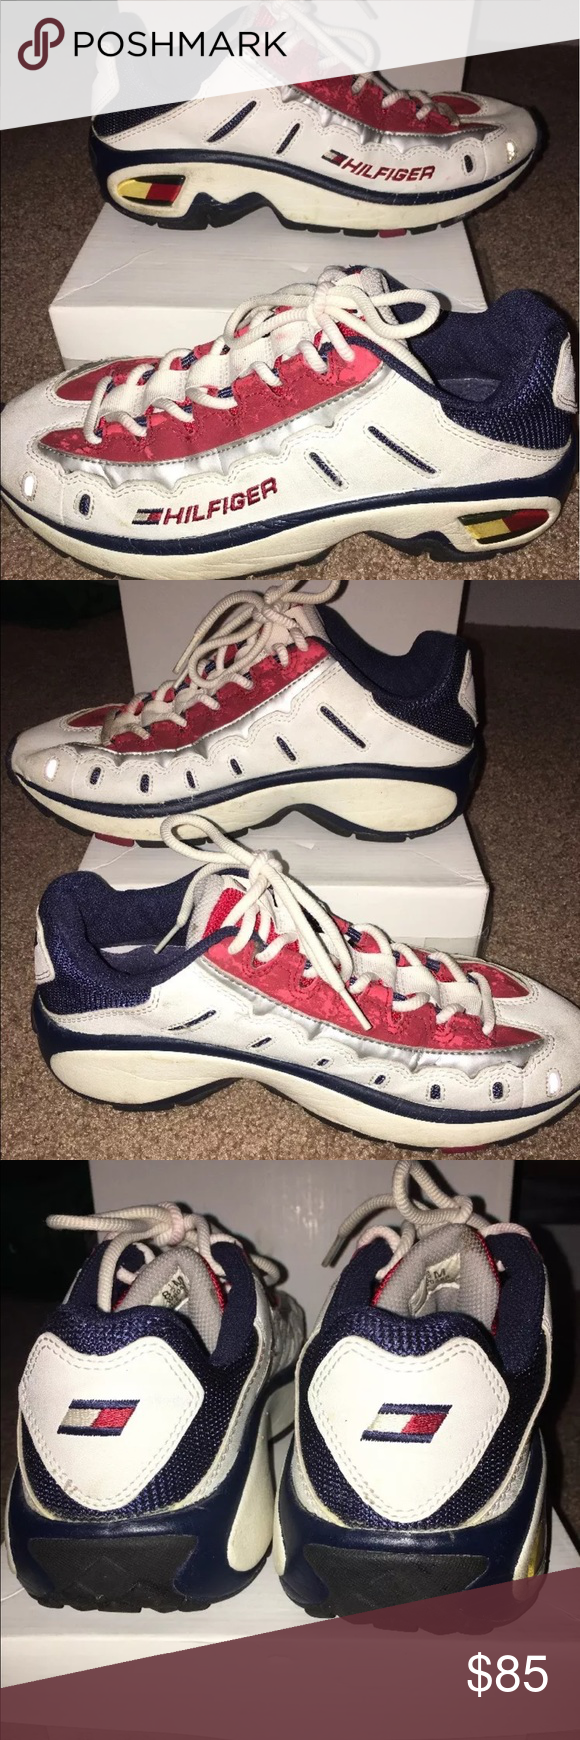 85bce8ad56a 90 s Tommy Hilfiger sneakers Authentic 90 s men s Tommy Hilfiger sneakers . Pre  owned but great for the era they came from . Laces will be cleaned before  ...